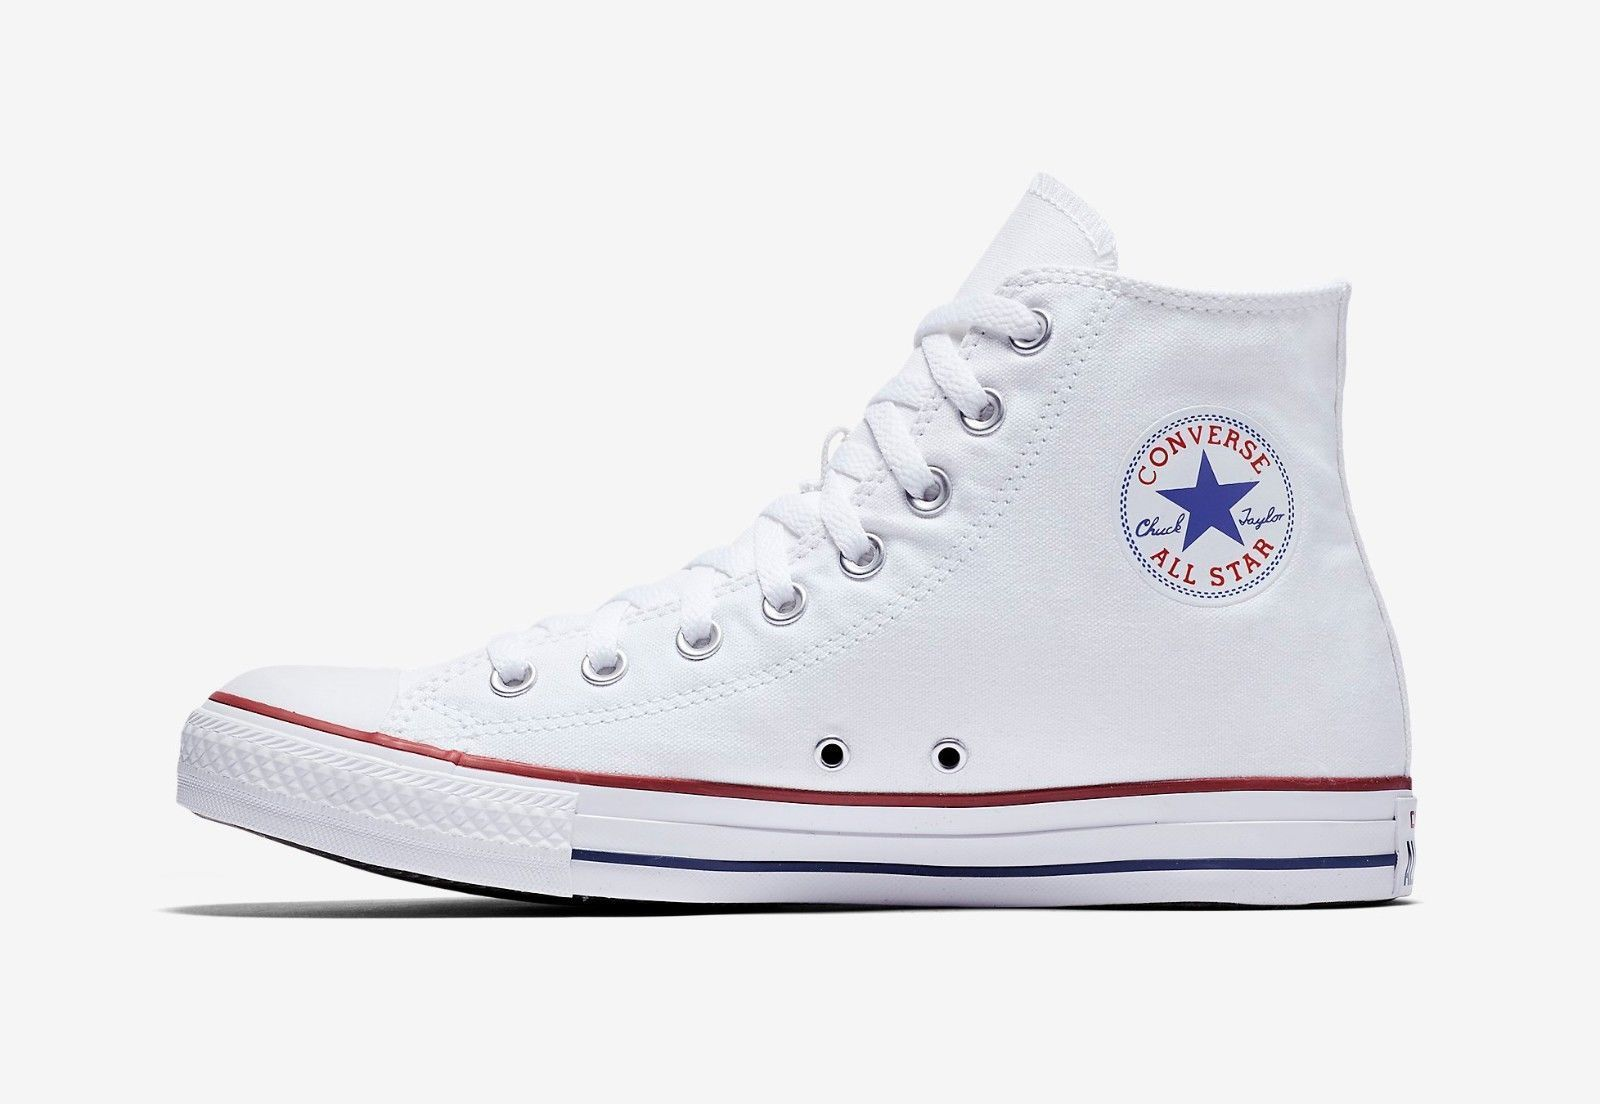 Converse Chuck Taylor All Star High Top Canvas Women Shoes